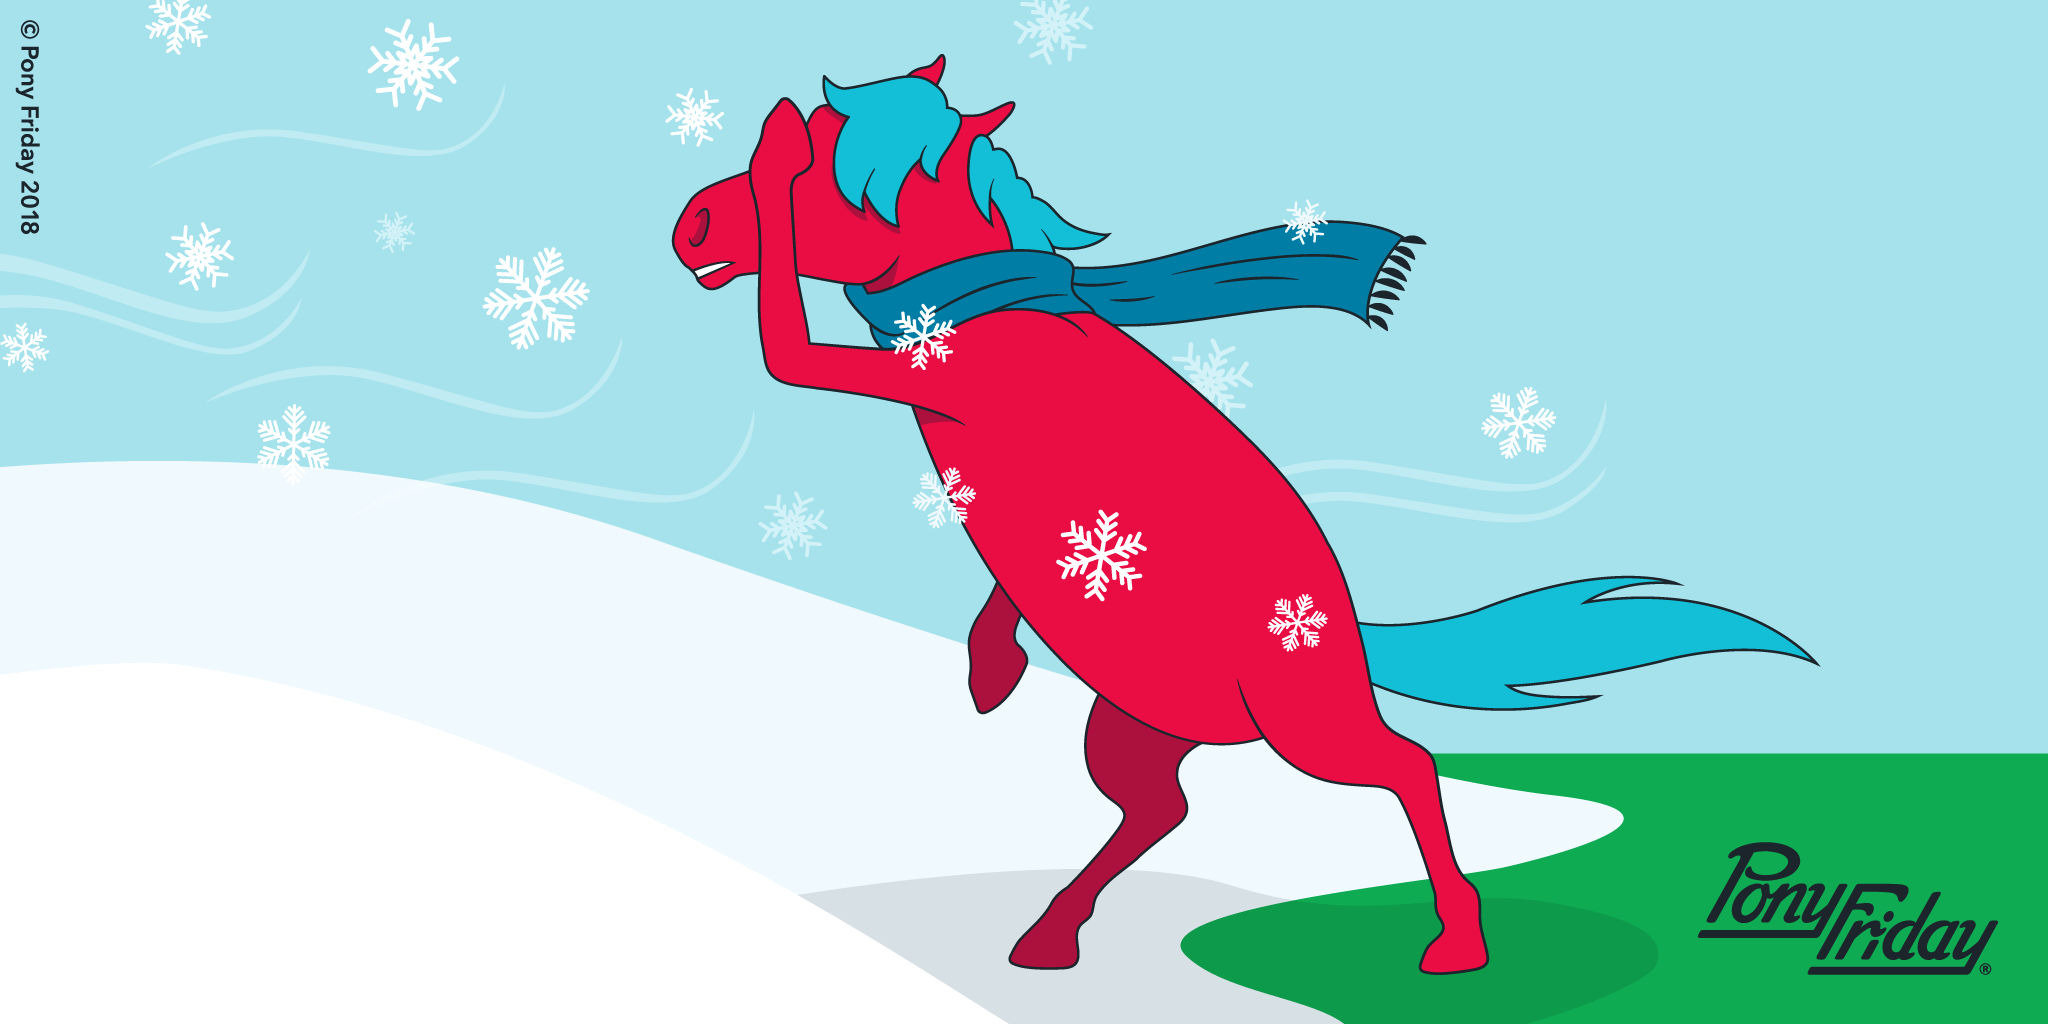 Pony-Friday-Sudden-Winter-Storm-Kicks-Blog-Post-Header-Image.png